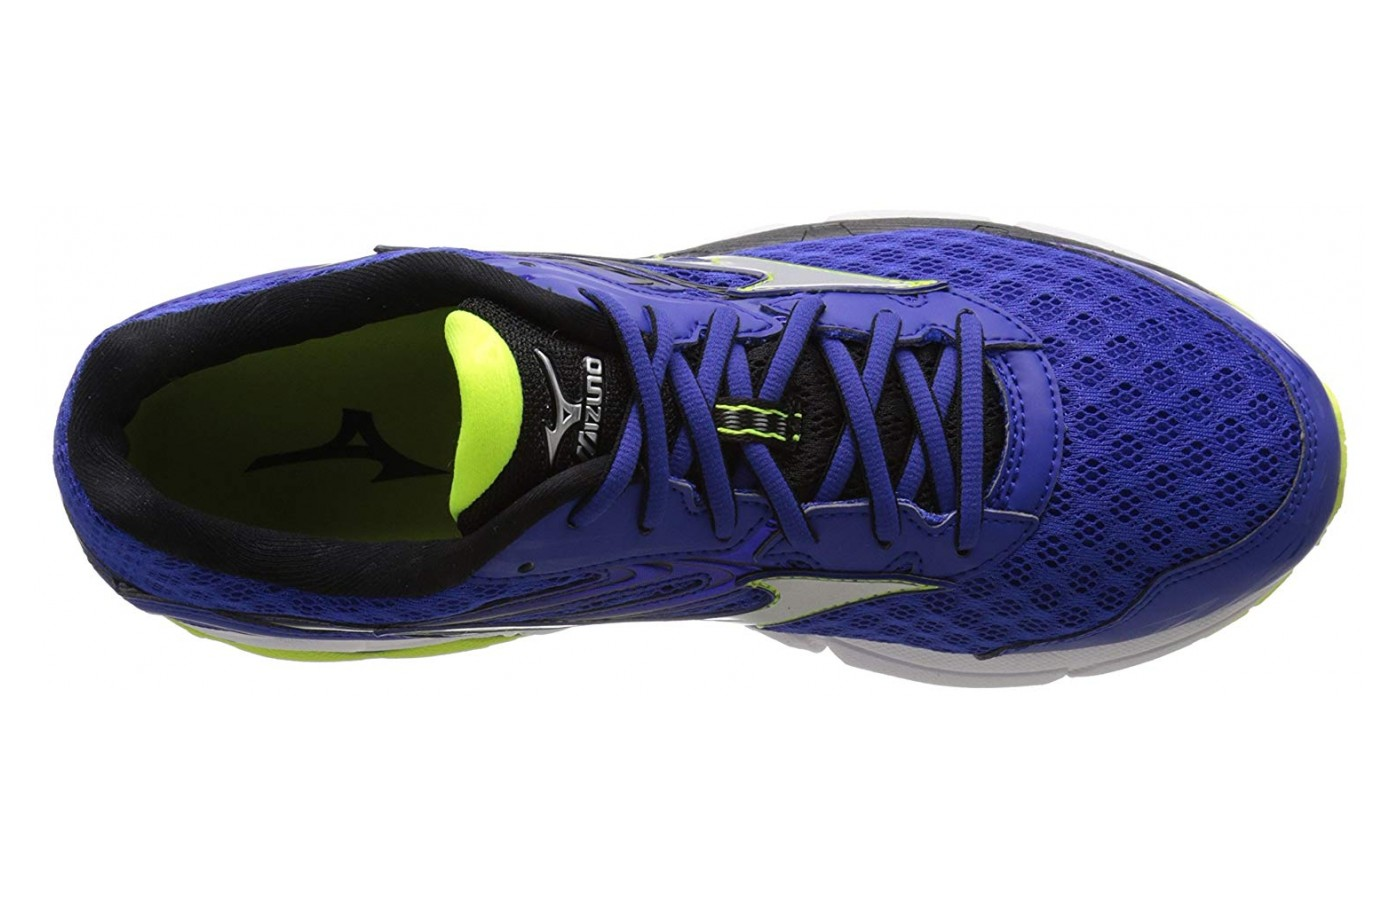 The tongue of the Mizuno Wave Rider 12 is of medium thickness.